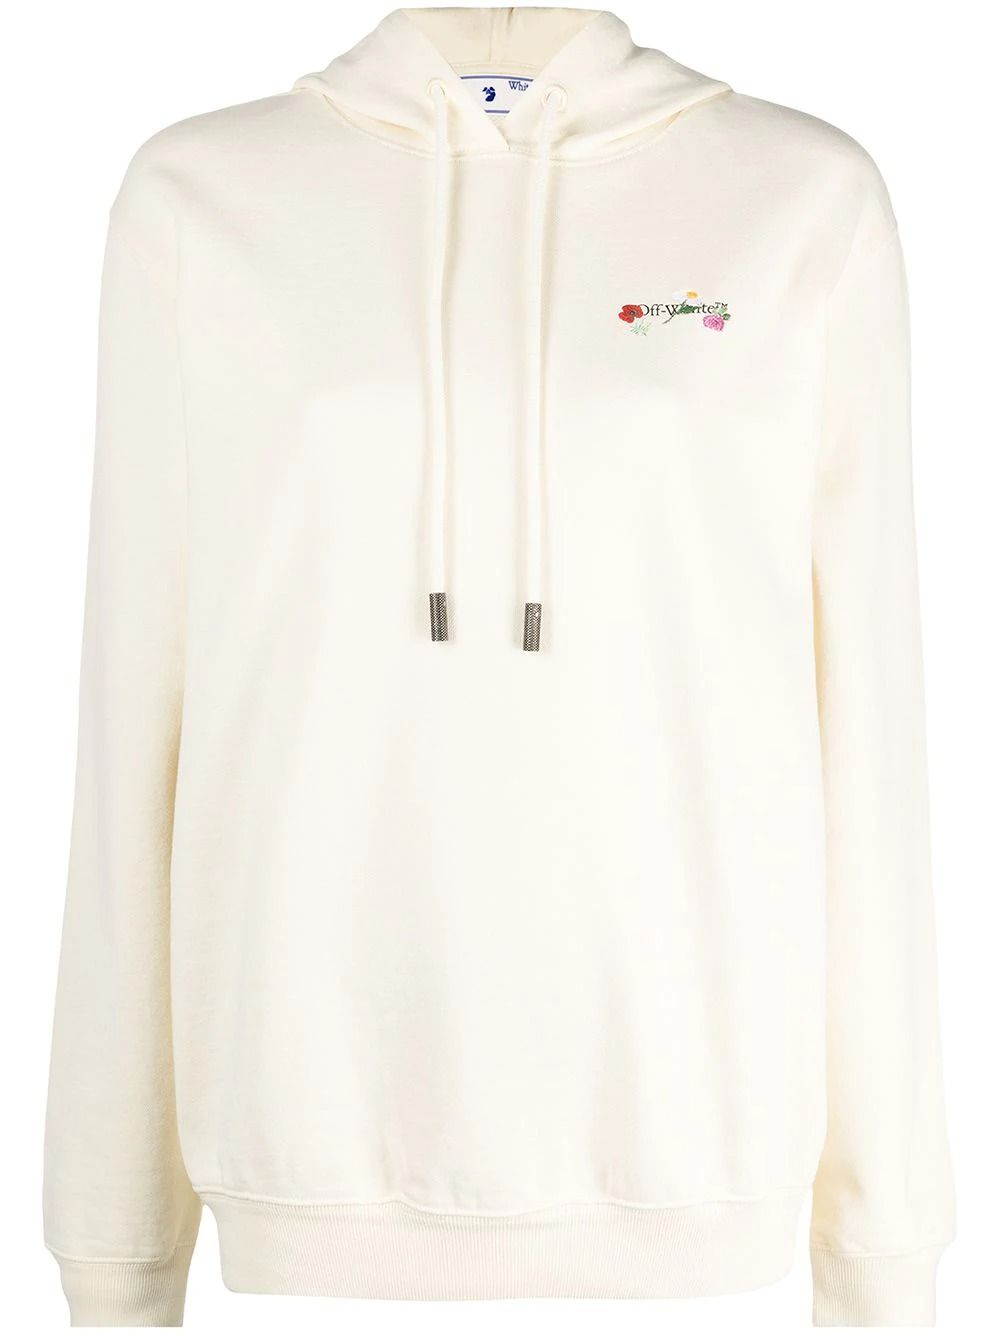 Off-White Sweatshirts OFF-WHITE WOMEN'S OWBB035R21JER0036184 BEIGE COTTON SWEATSHIRT